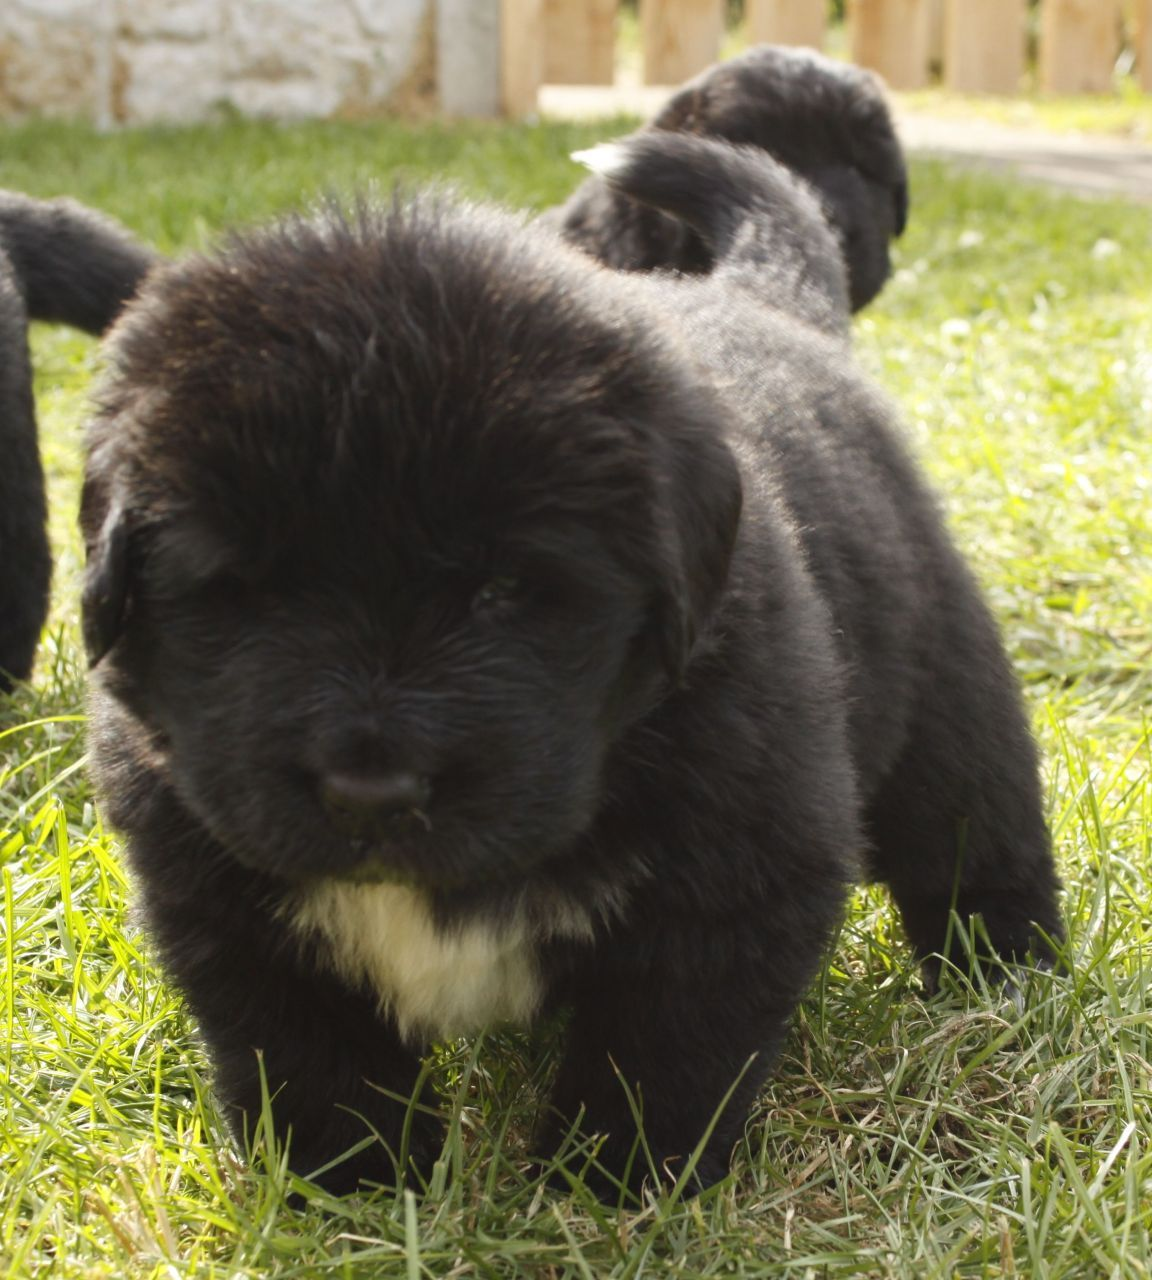 35 very beautiful newfoundland dog pictures - We Have A Top Quality Litter Of 6 Newfoundland Puppies Dogs And Bitches We Have Both Parents Who Can Be Viewed They Are Both Beautiful Newfoundlans